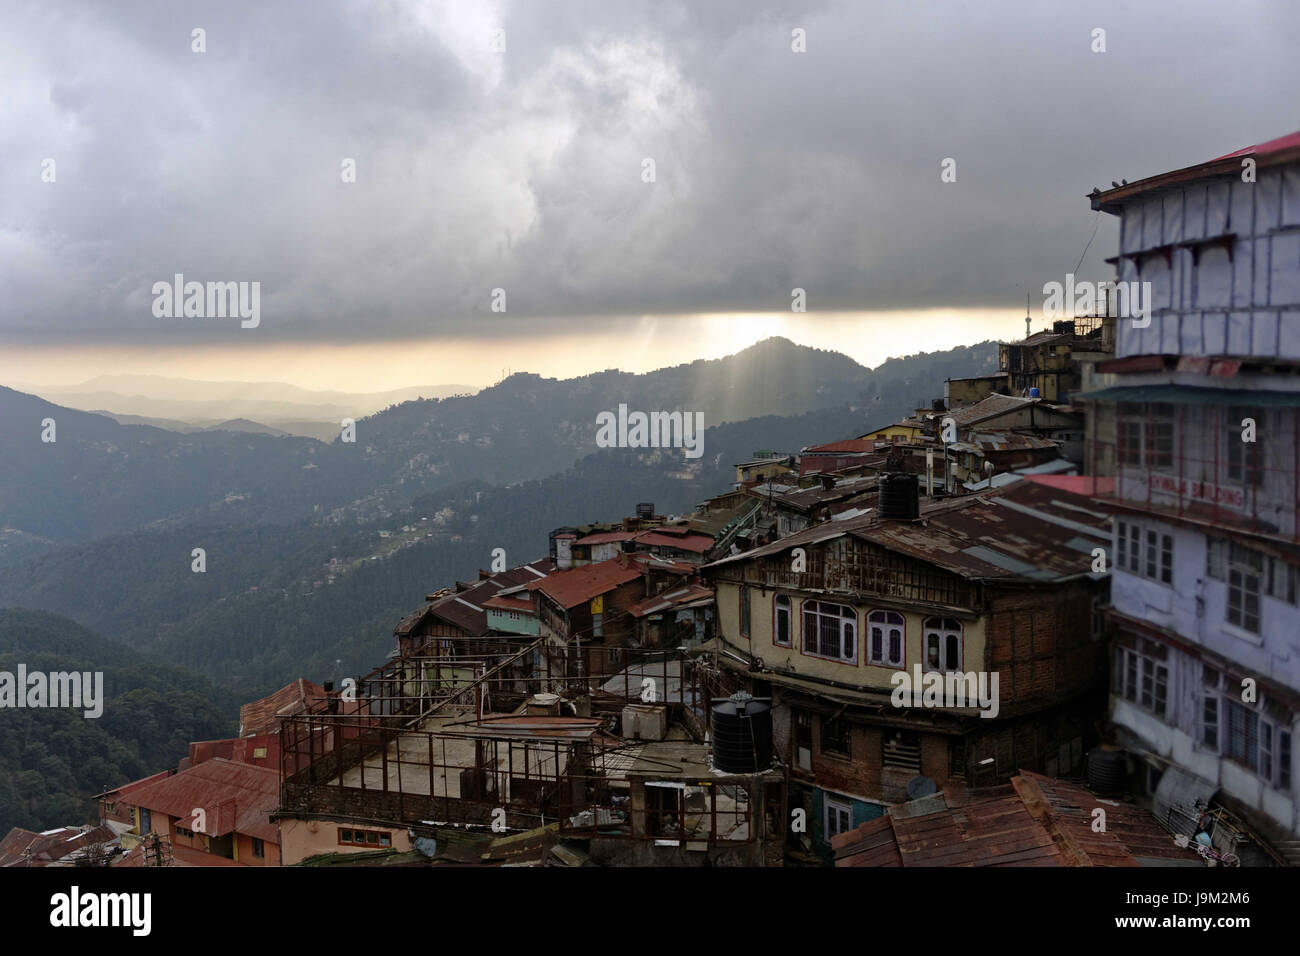 Shimla city, himachal pradesh, india, Asia - Stock Image